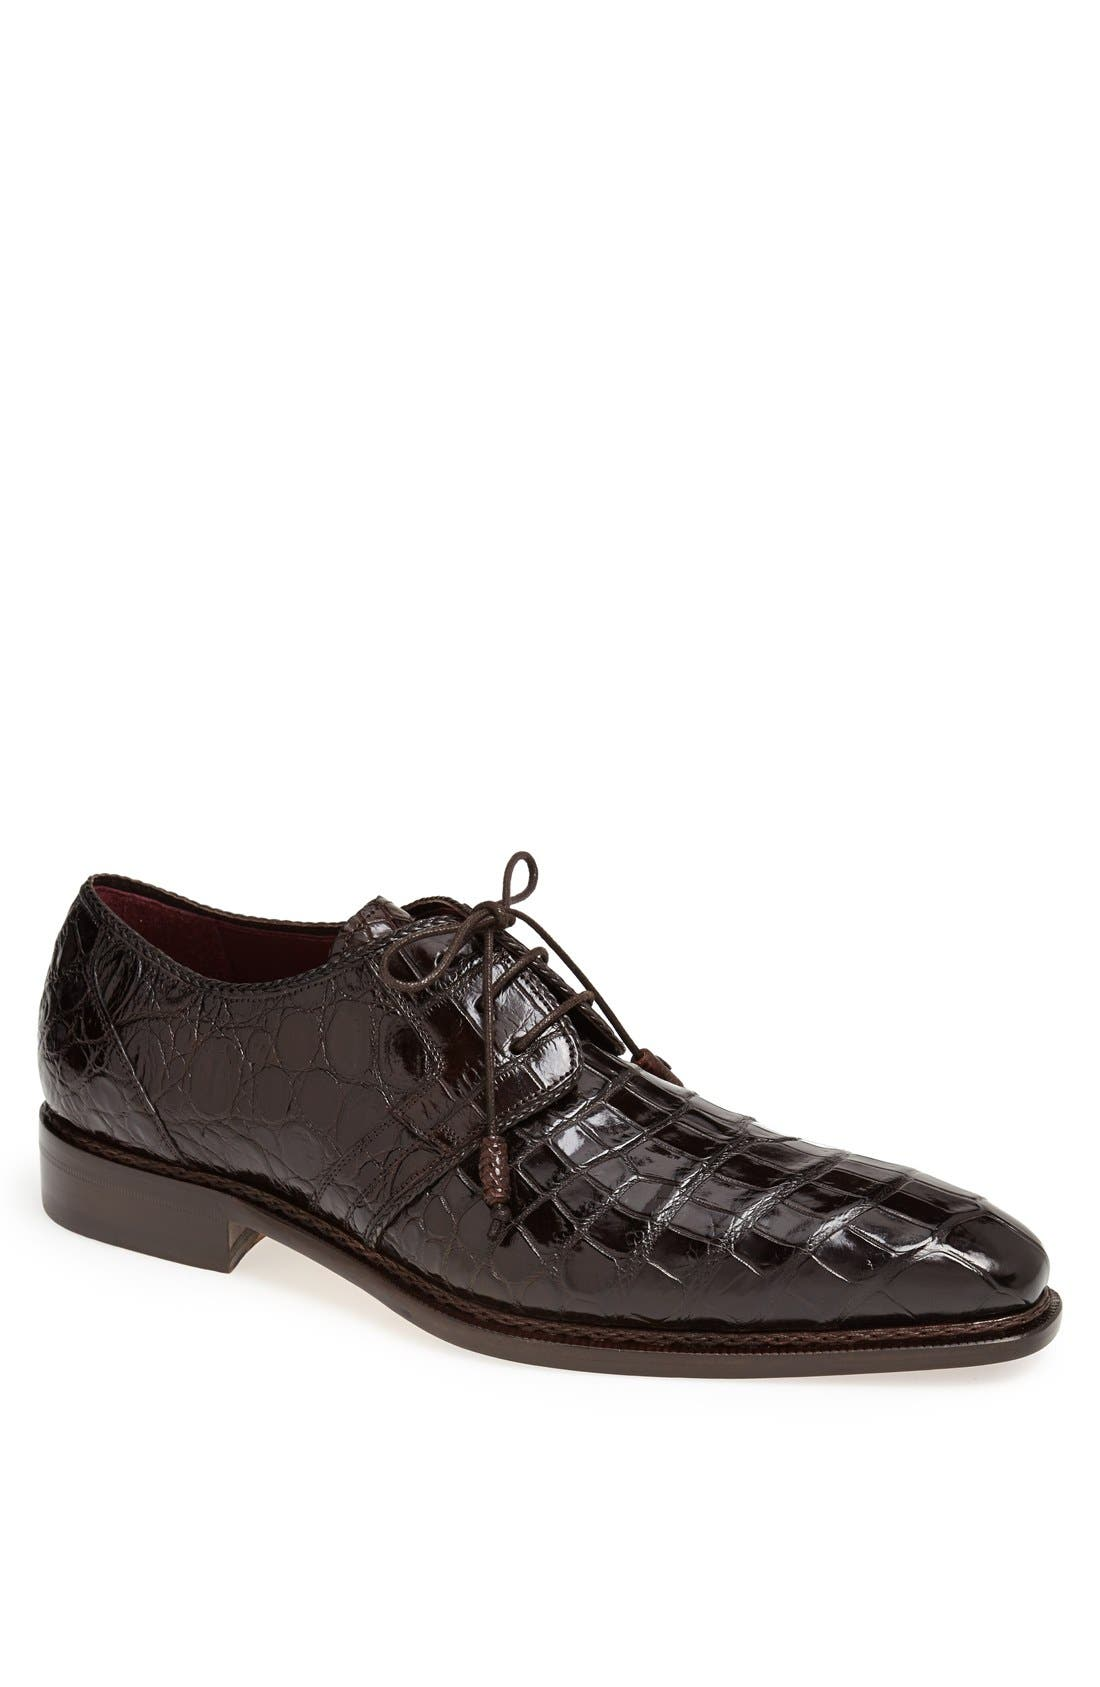 'Marini' Alligator Leather Derby,                             Main thumbnail 1, color,                             BROWN